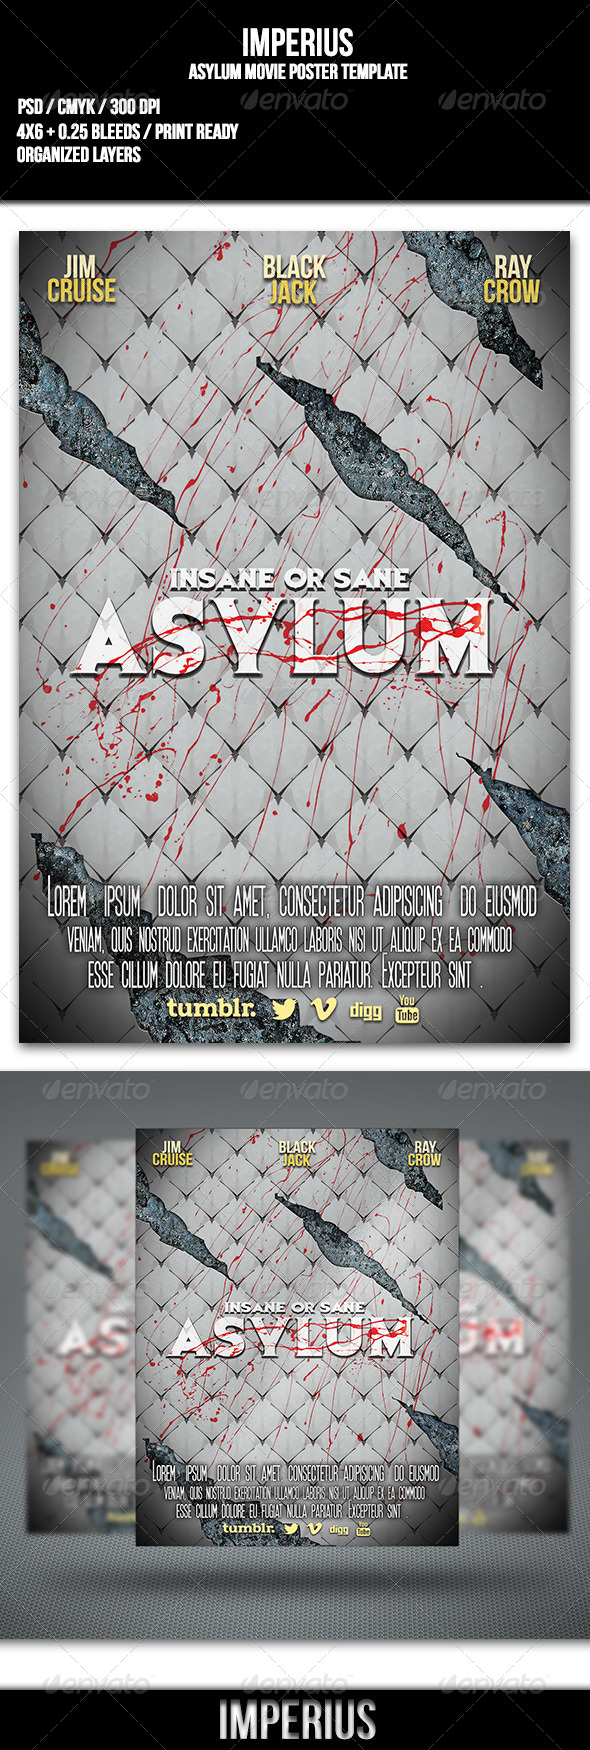 Asylum Movie Poster - Flyers Print Templates